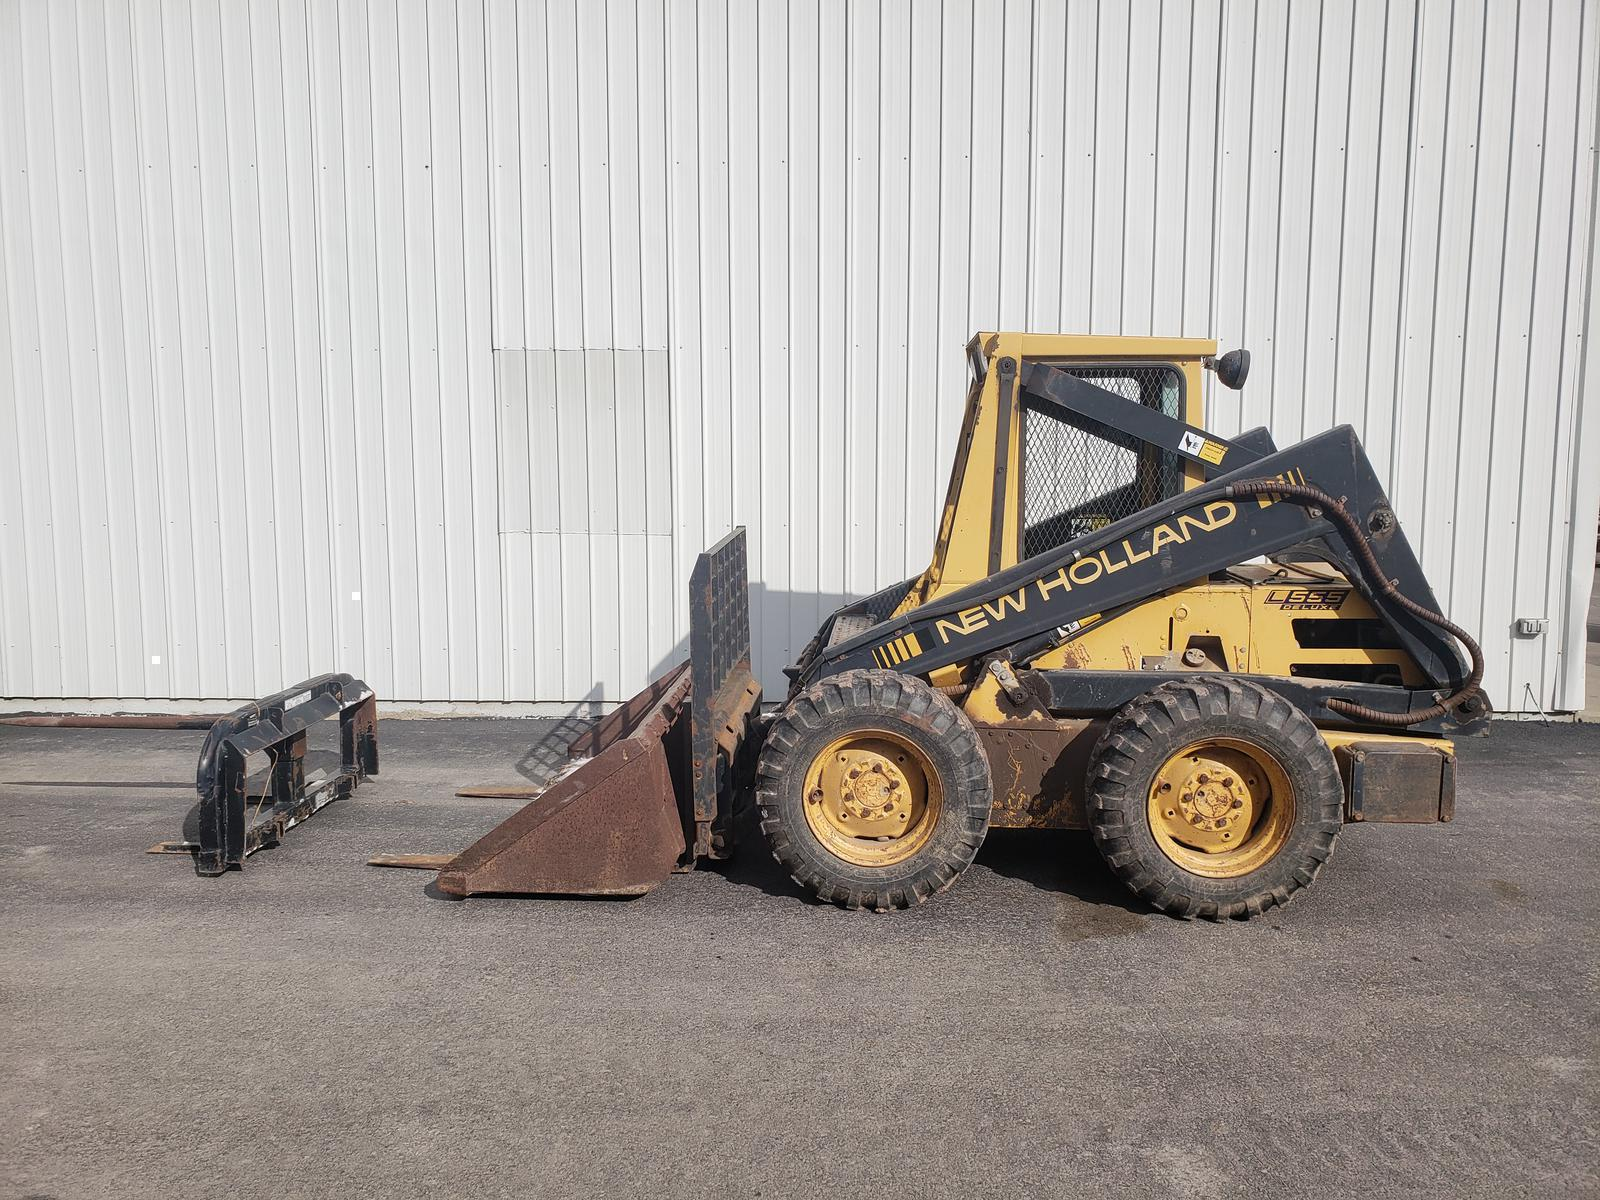 New holland l555 deluxe hydraulic problems | New Holland L555 deluxe on